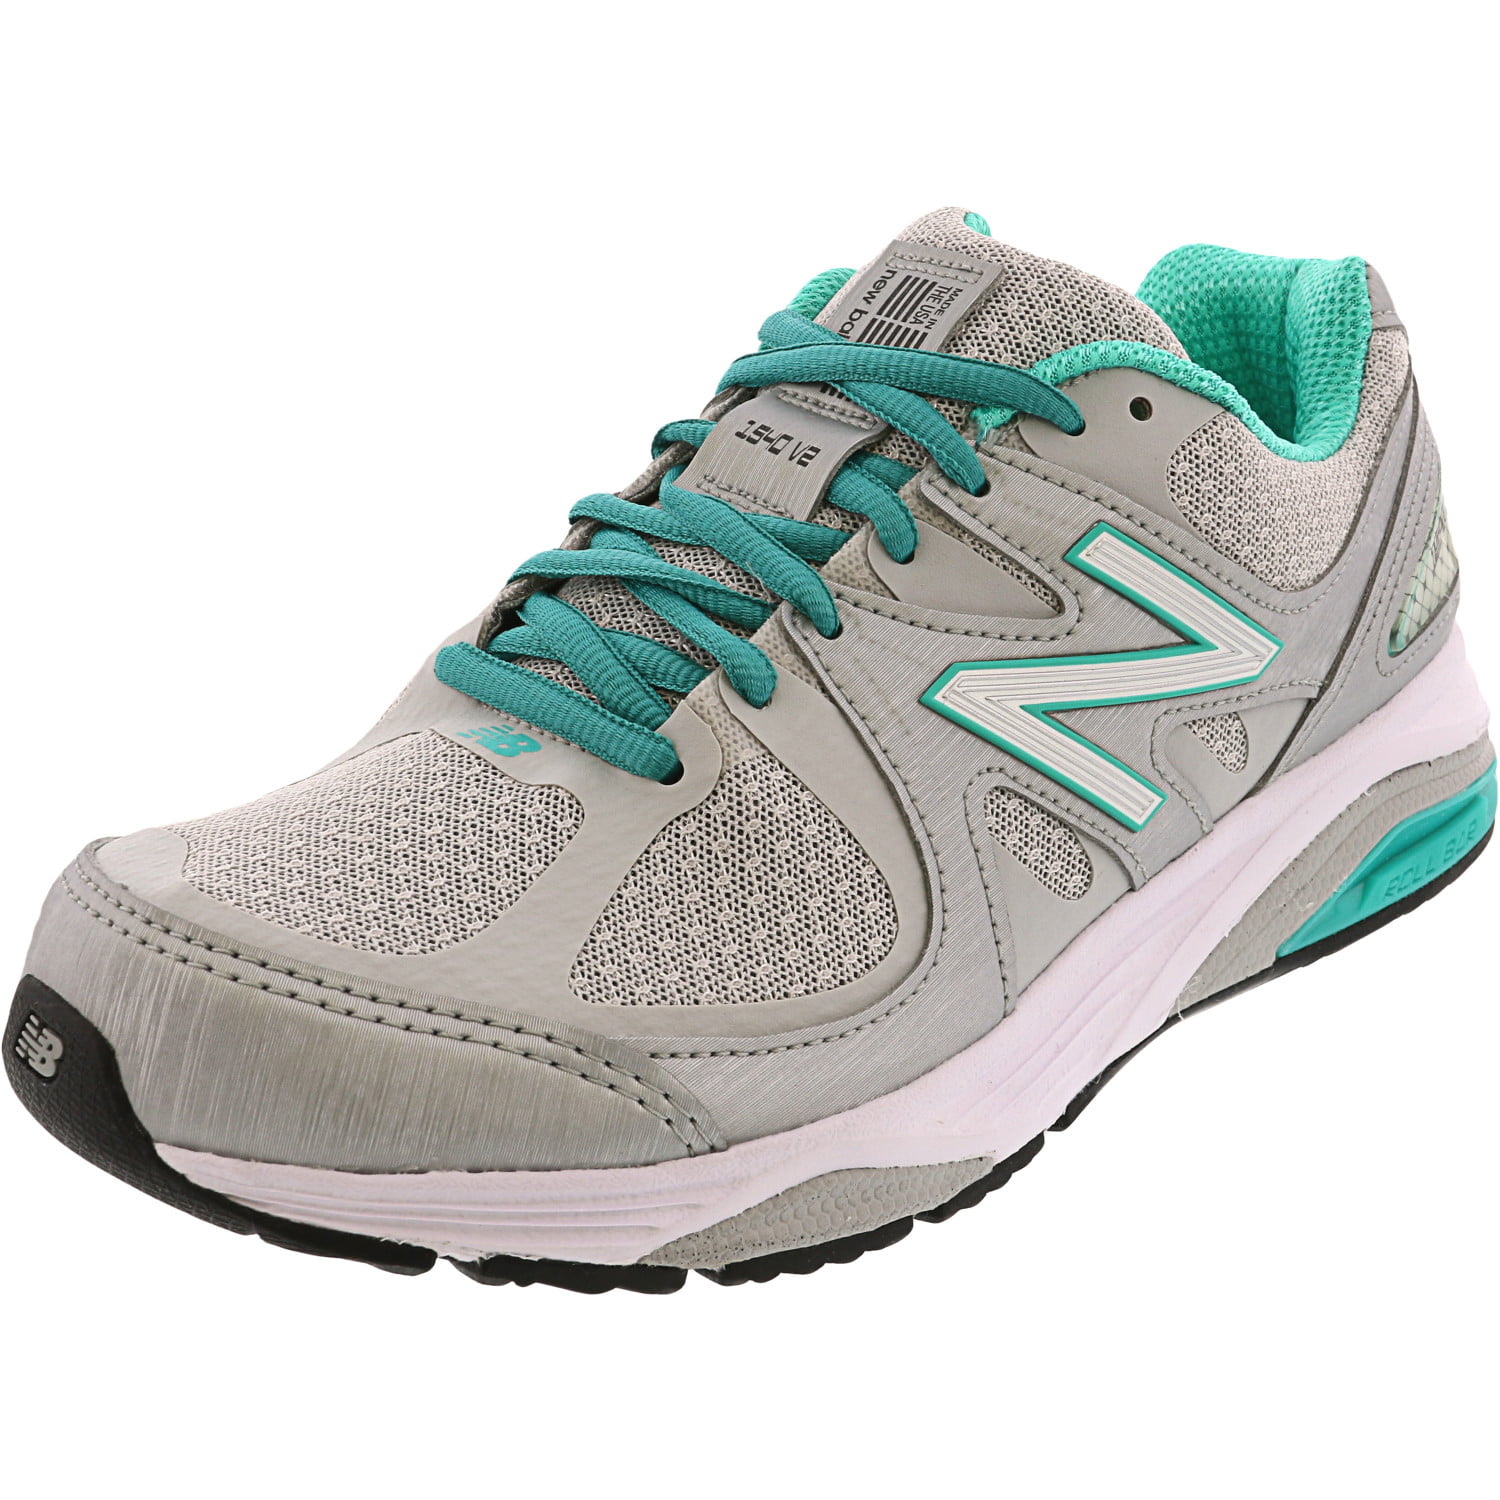 W1540 Sg2 Ankle-High Running